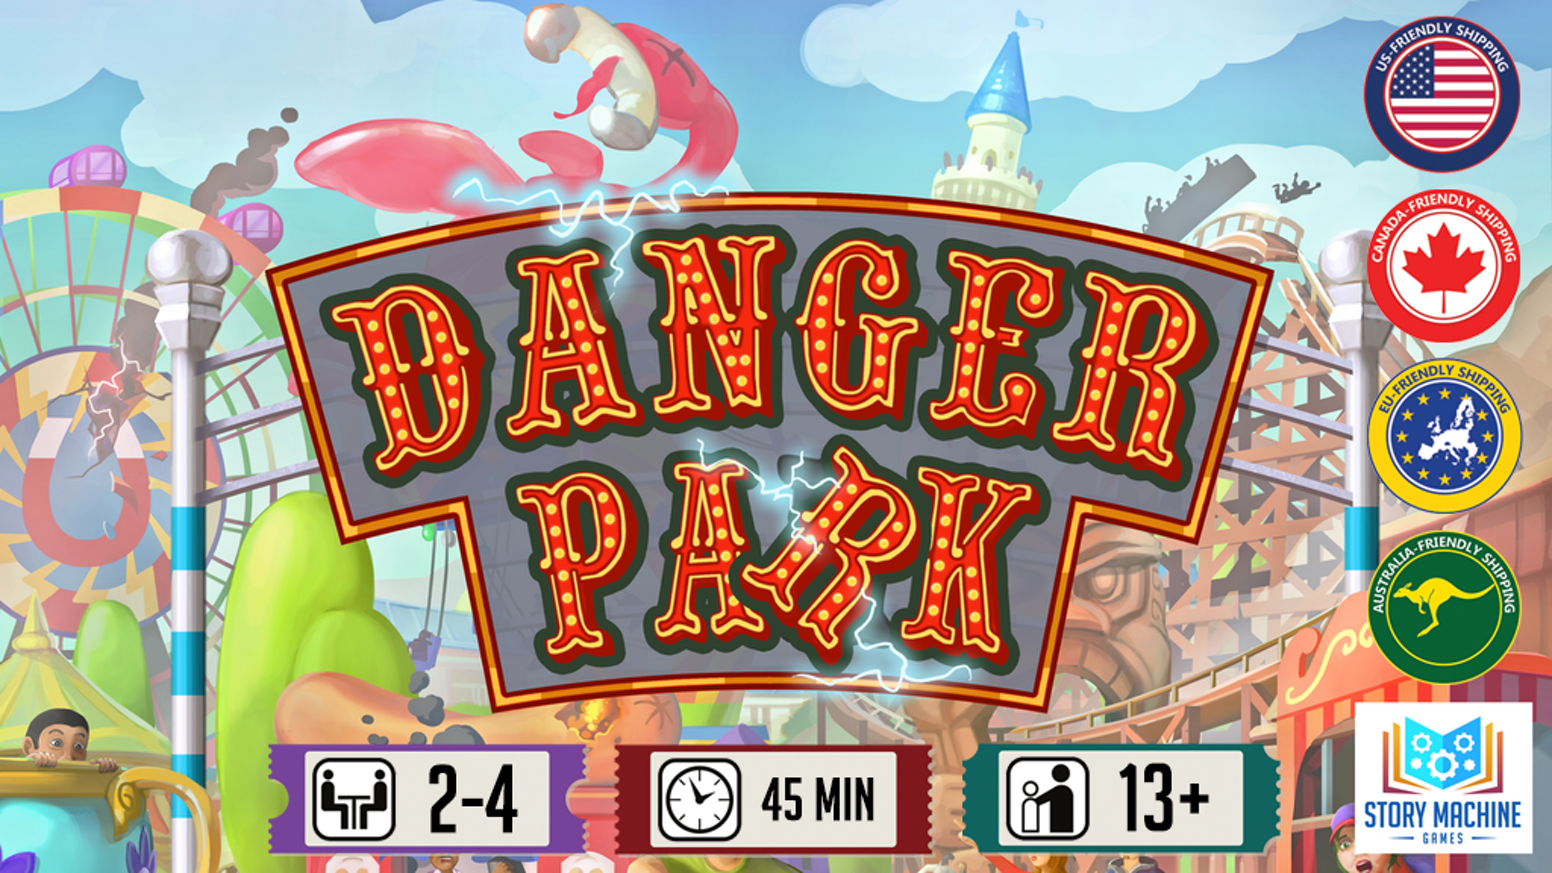 Danger Park is a light-weight map-building tabletop game about sabotage, fraud, and destruction for 2-4 players.